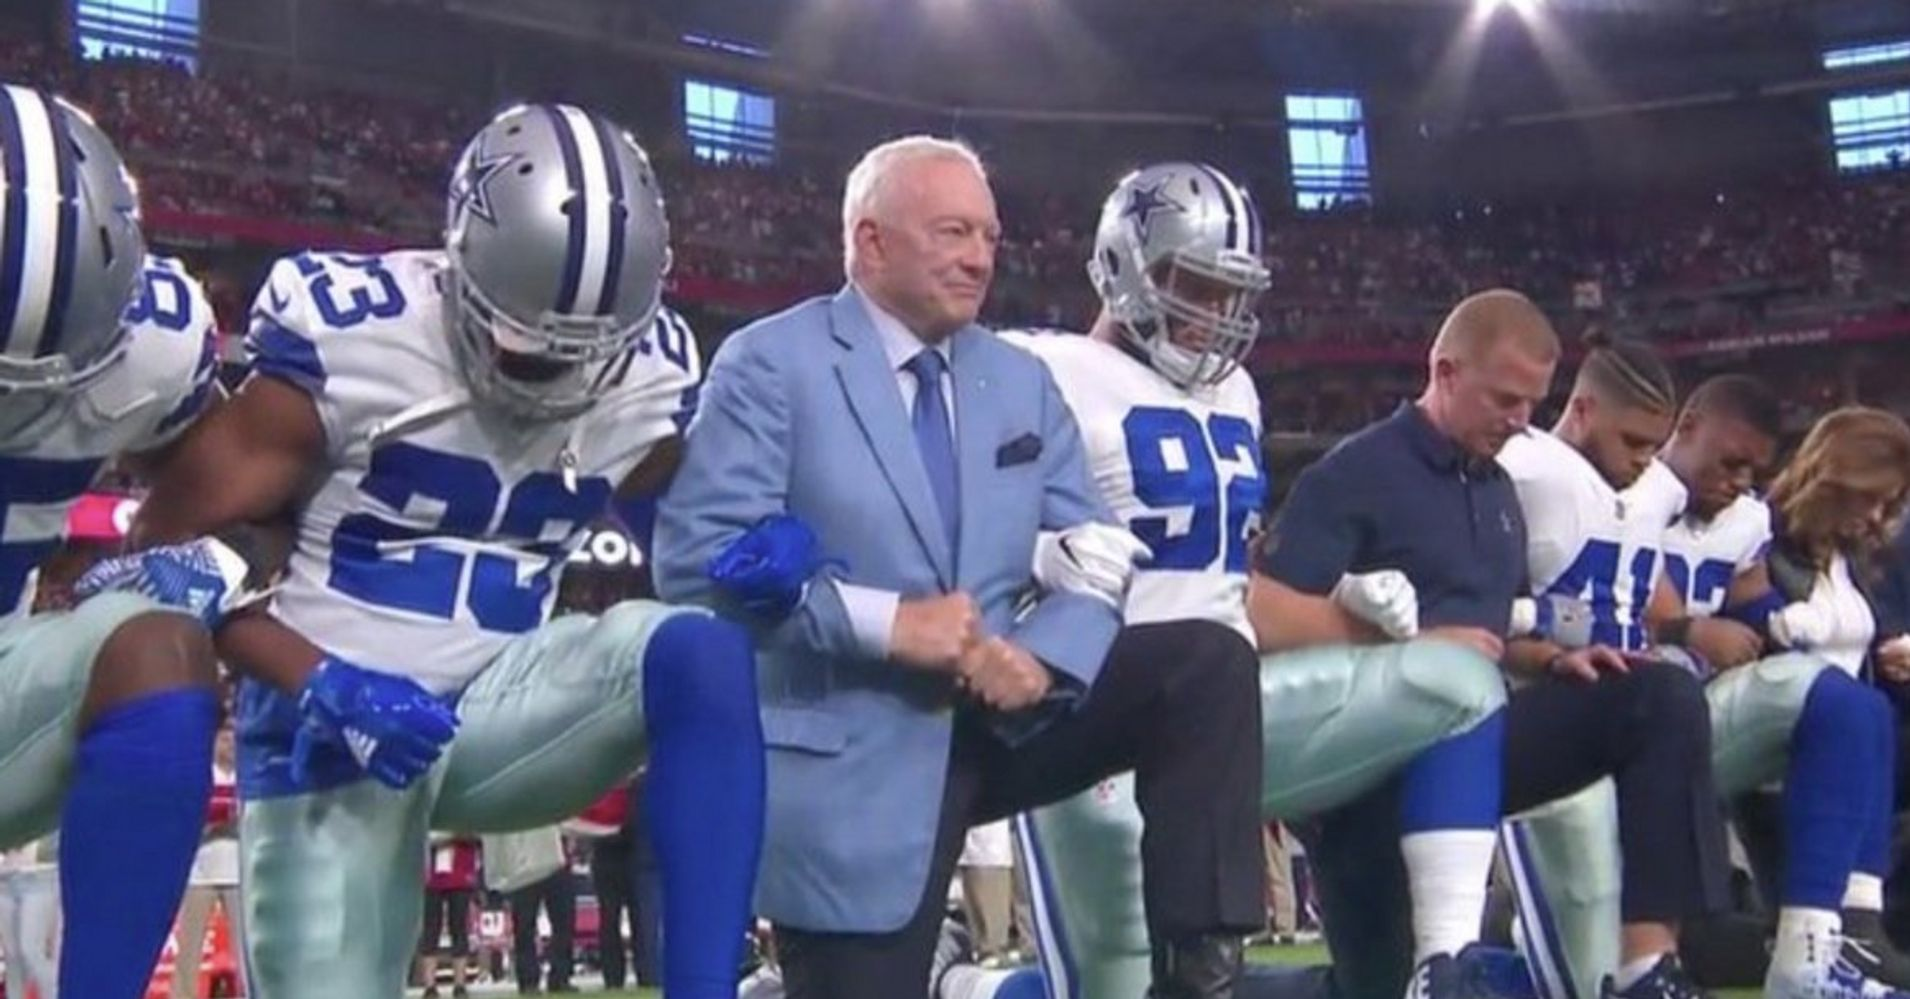 Cowboys, Cardinals Conduct Silent Protests As Controversy Over Trump's Remarks Continue